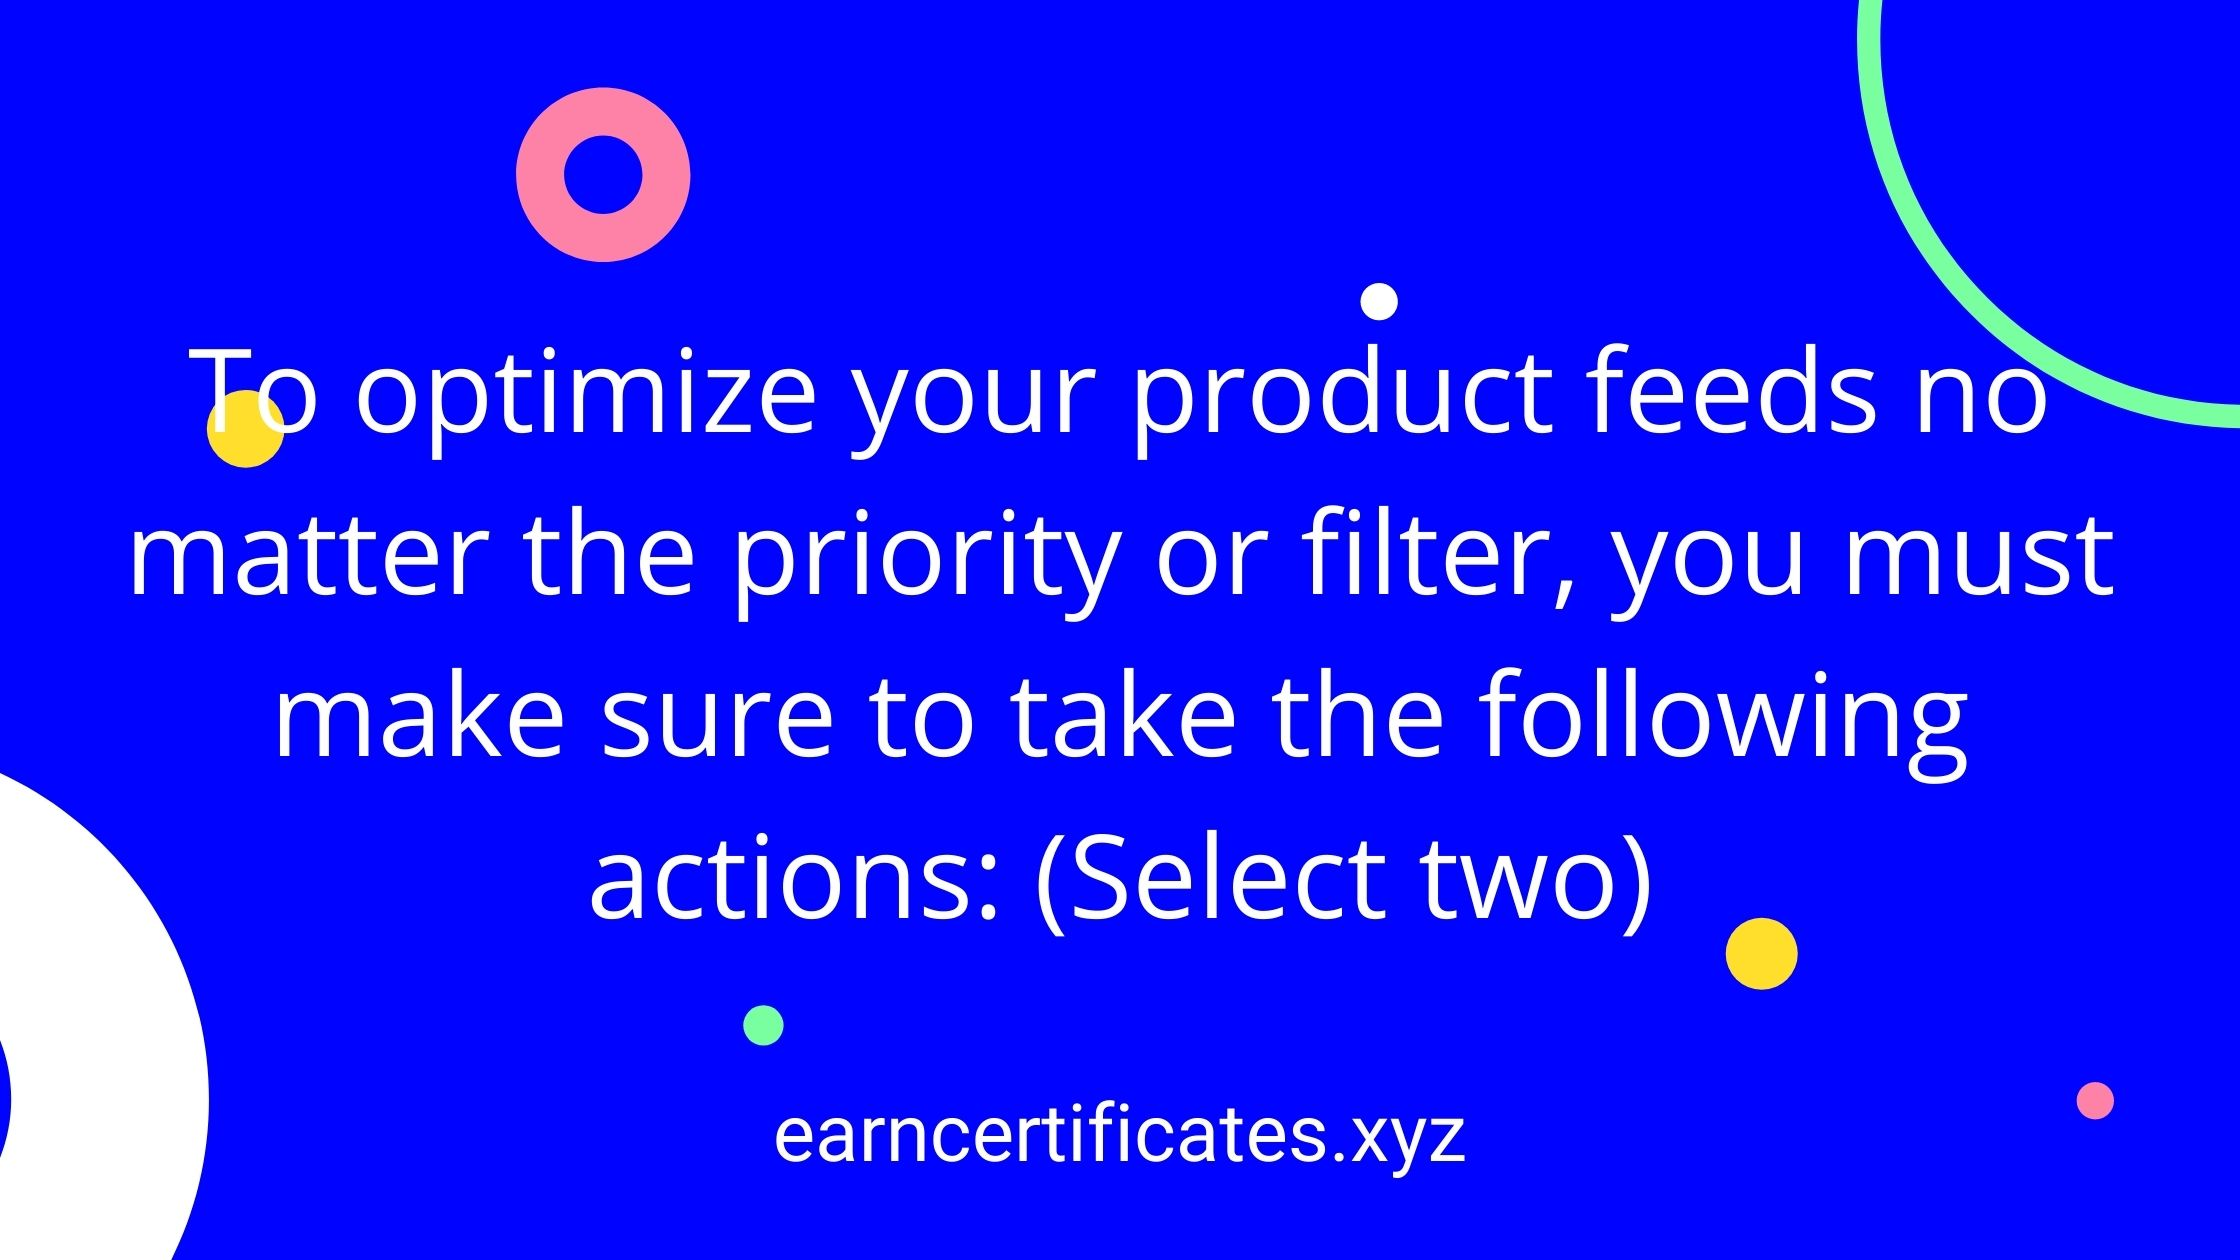 To optimize your product feeds no matter the priority or filter, you must make sure to take the following actions: (Select two)